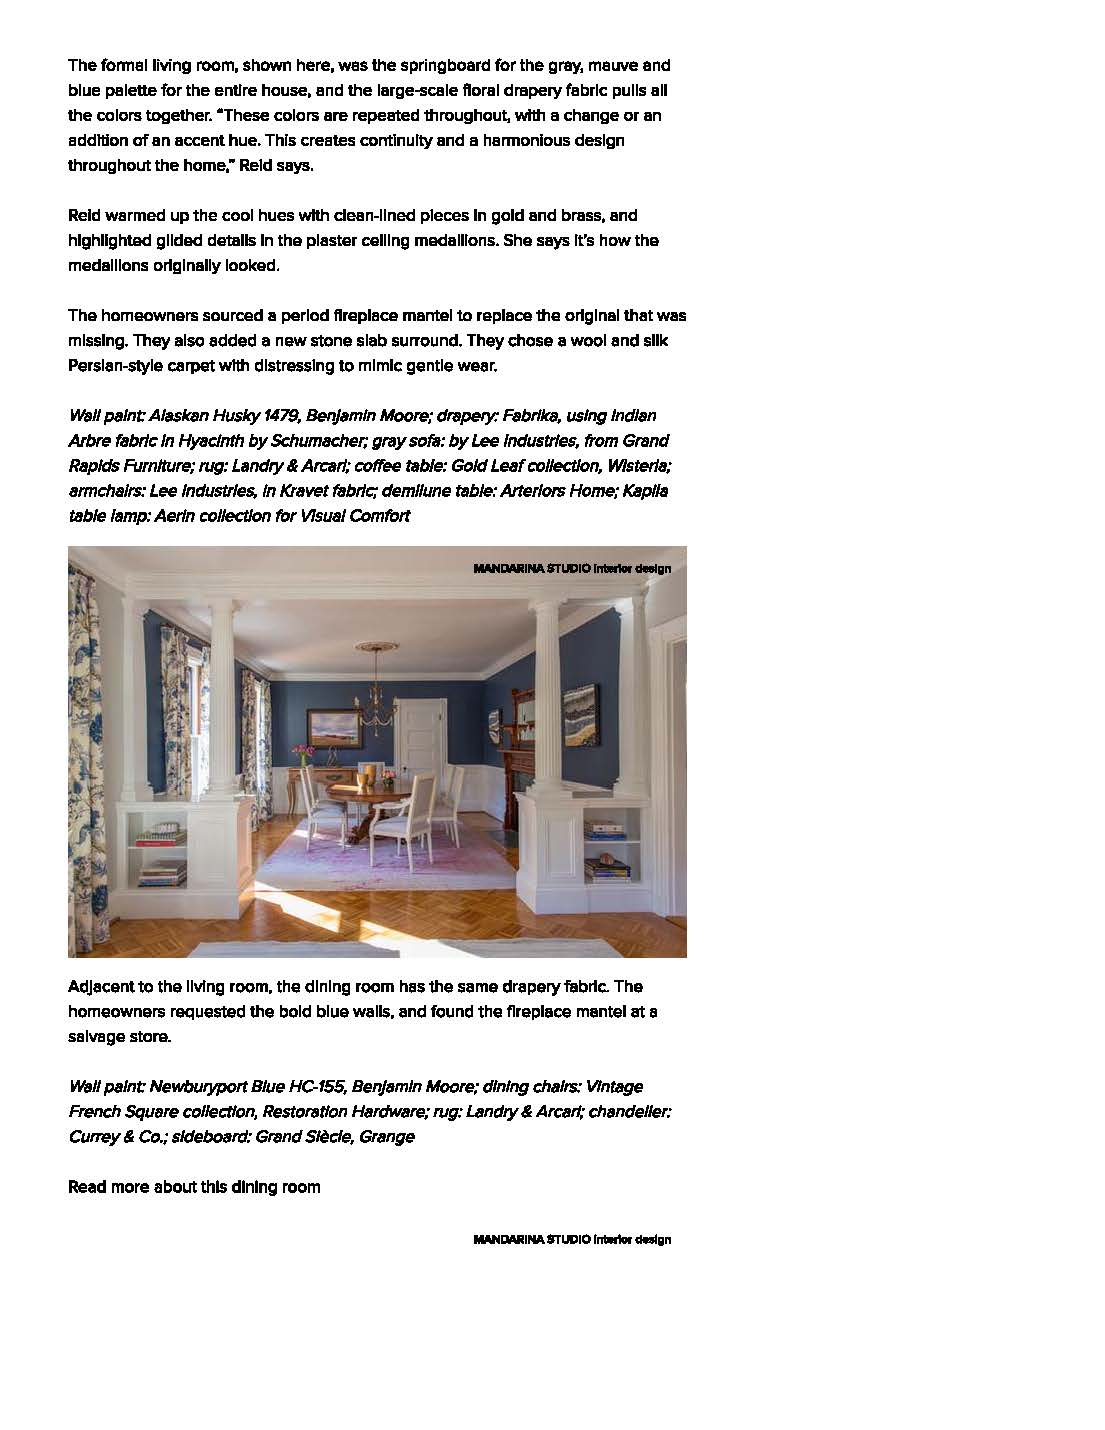 Houzz Tour_ The Remaking of a Queen Anne in Boston (1)_Page_05.jpg